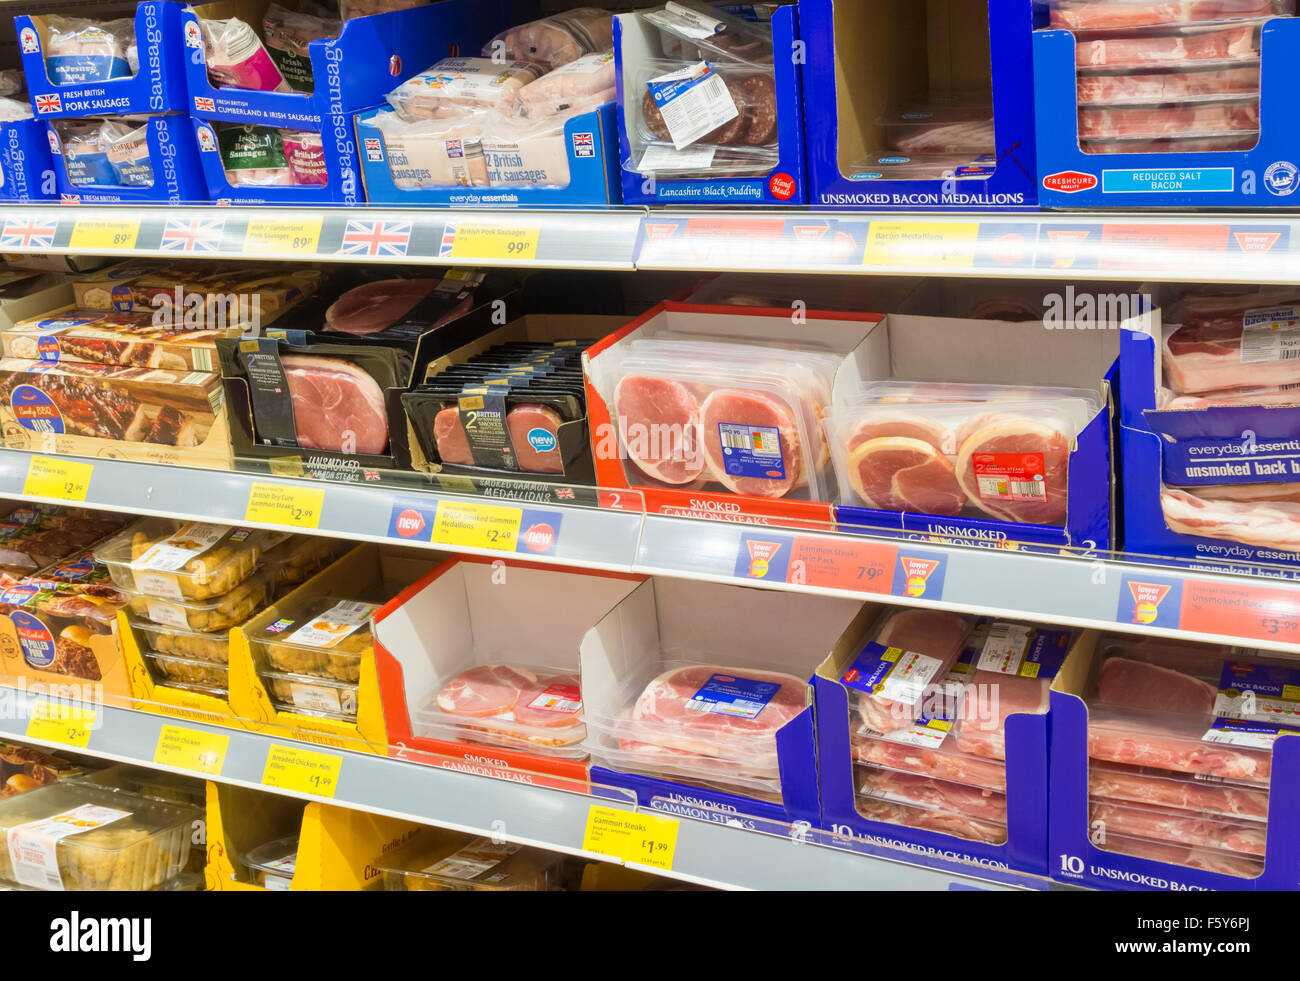 Bacon in Aldi supermarket. England, UK - Stock Image